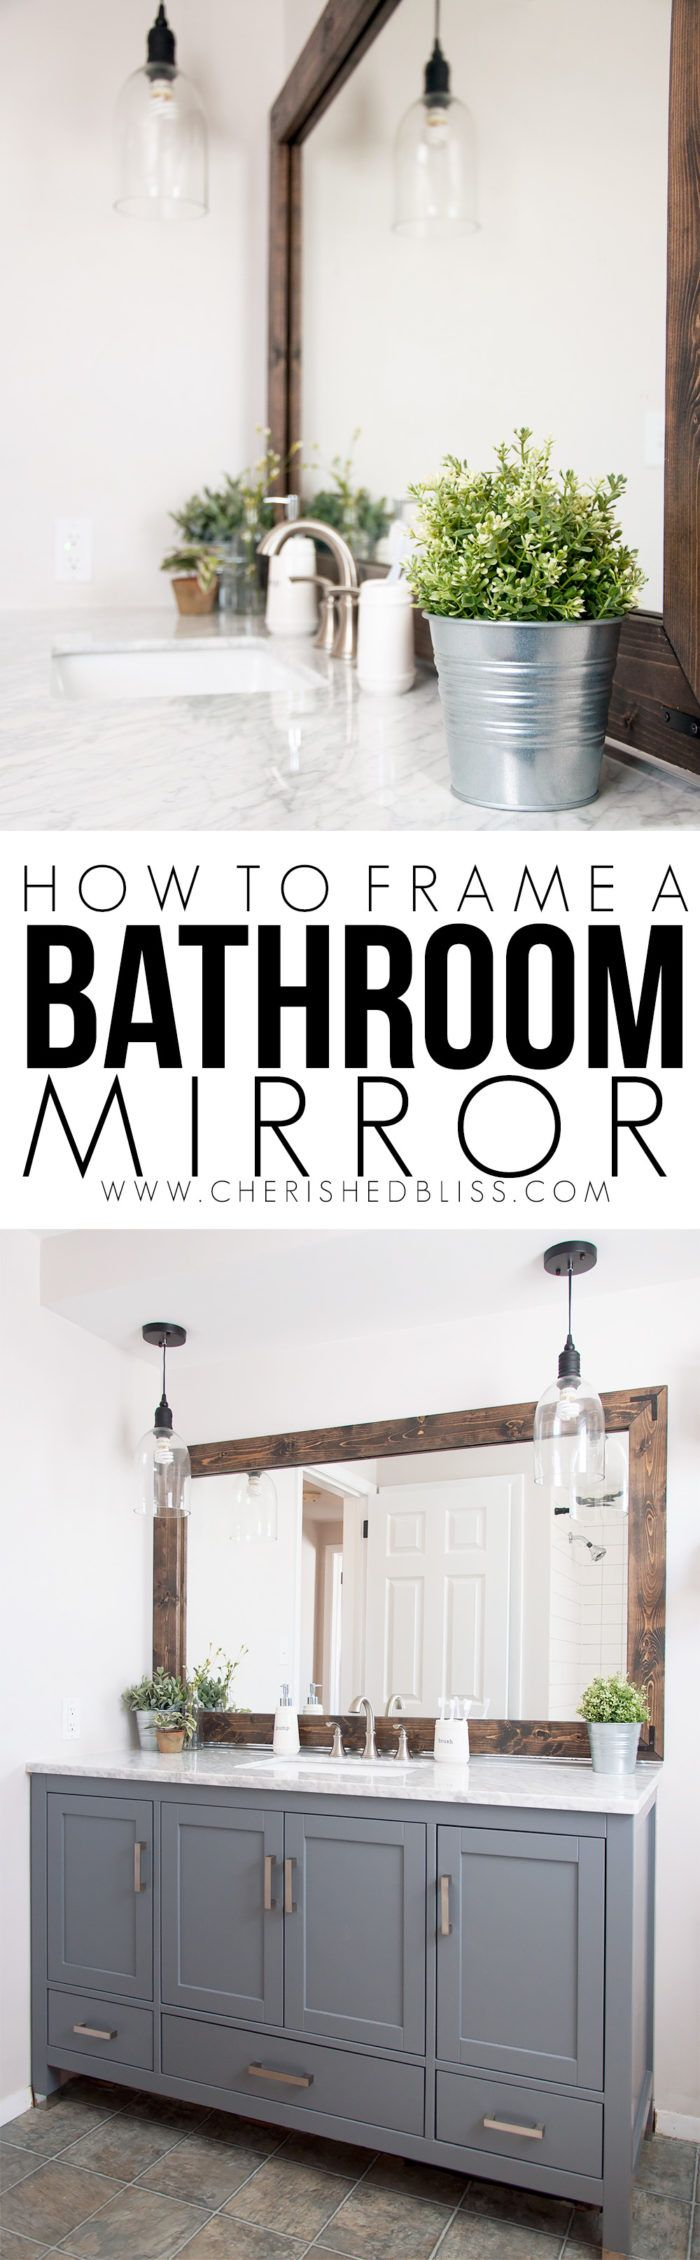 Bathroom mirrors wood frame - How To Frame A Bathroom Mirror